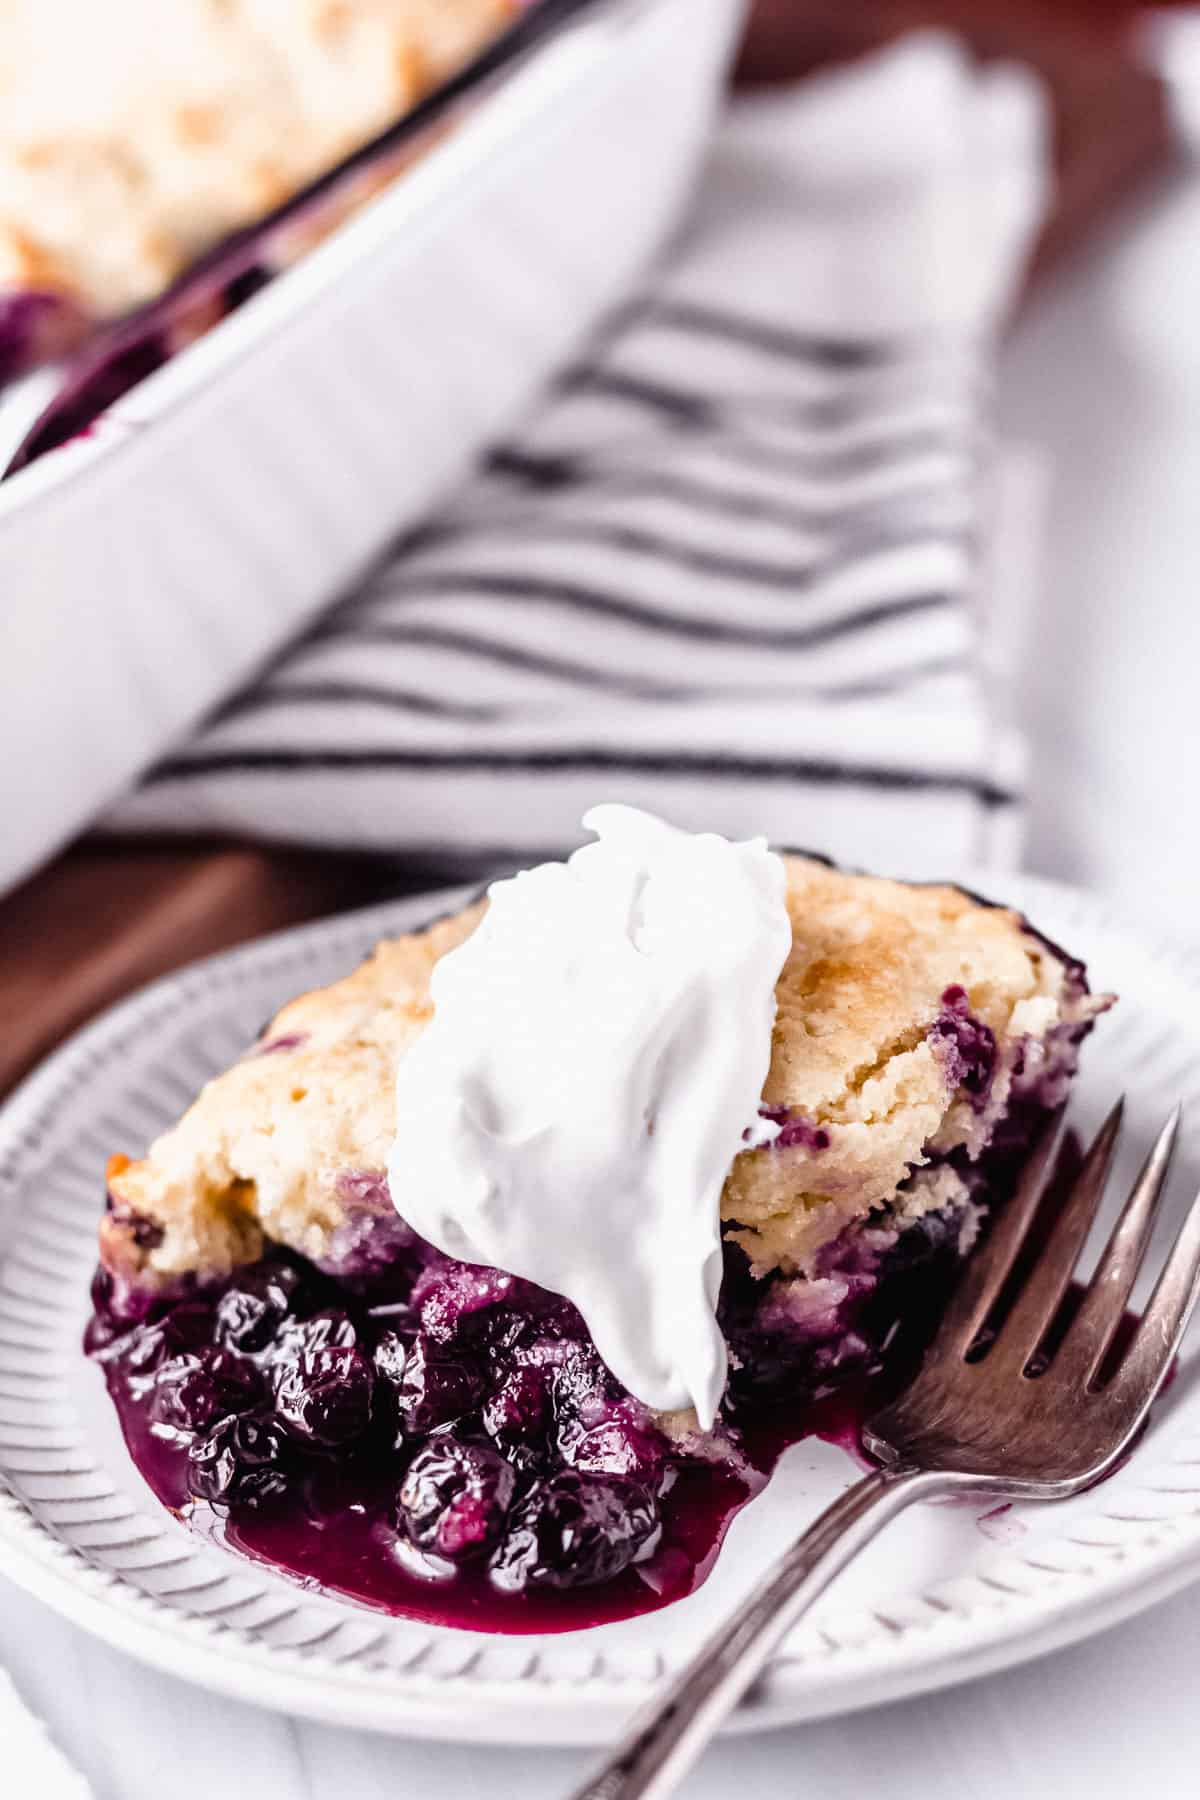 Close up of blueberry cobbler on a white plate with a fork and a striped towel in the background